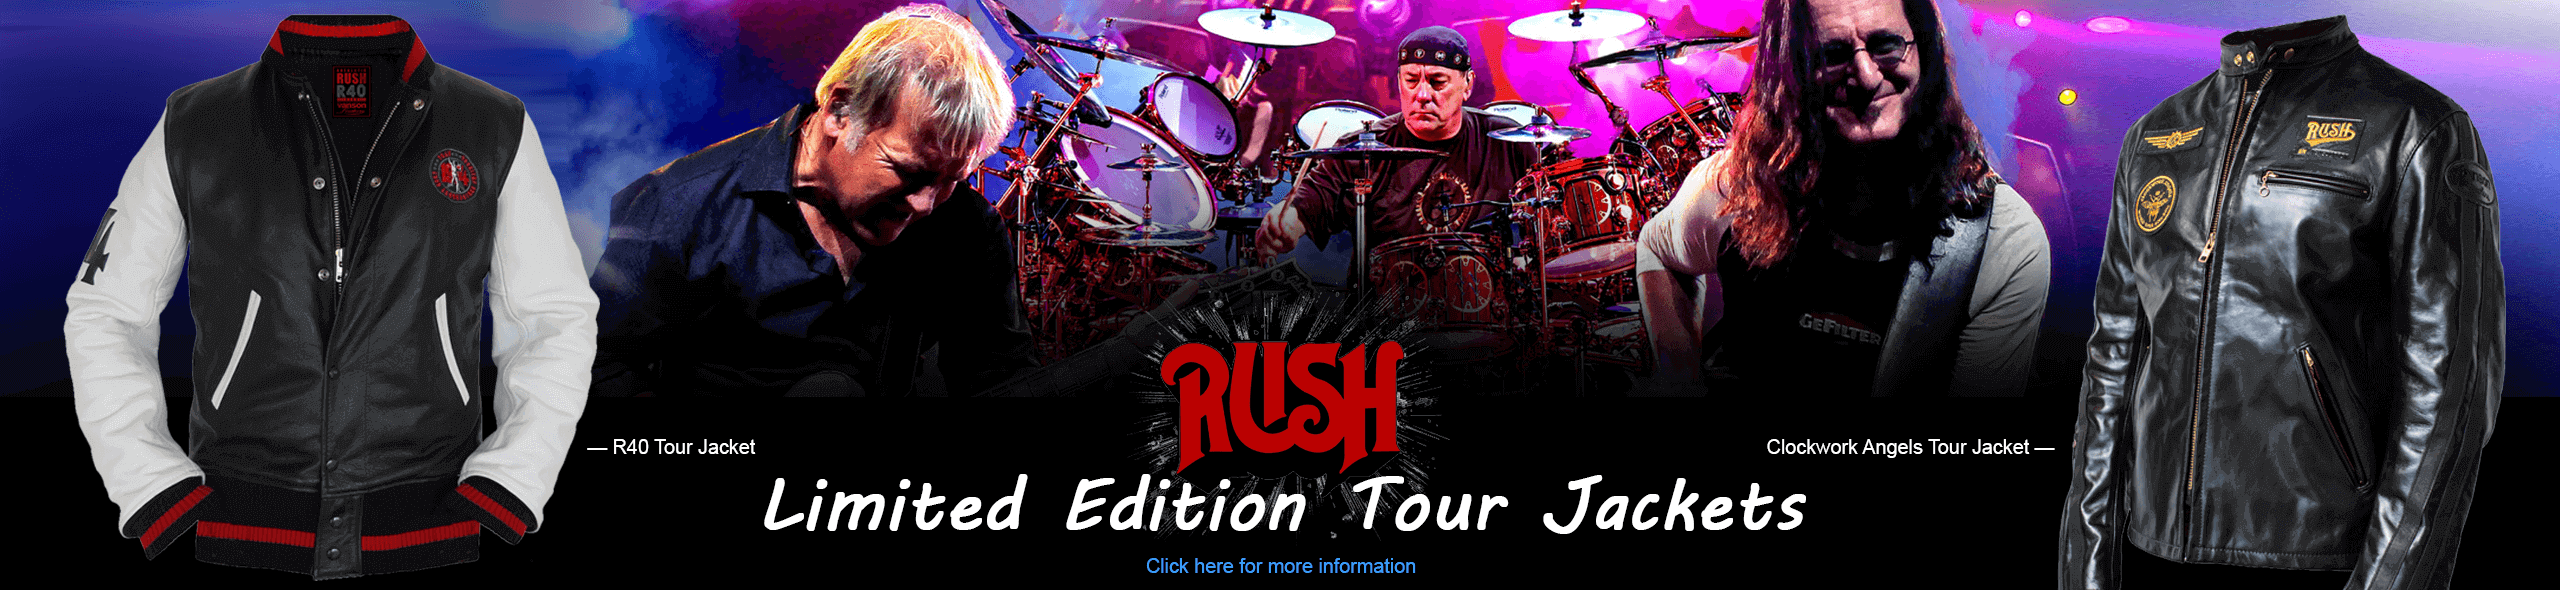 As authorized by RUSH, Vanson is offering limited editions of these two tour jackets. Here is your chance as a true RUSH fan to own an authentic Tour Jacket from Vanson Leathers.